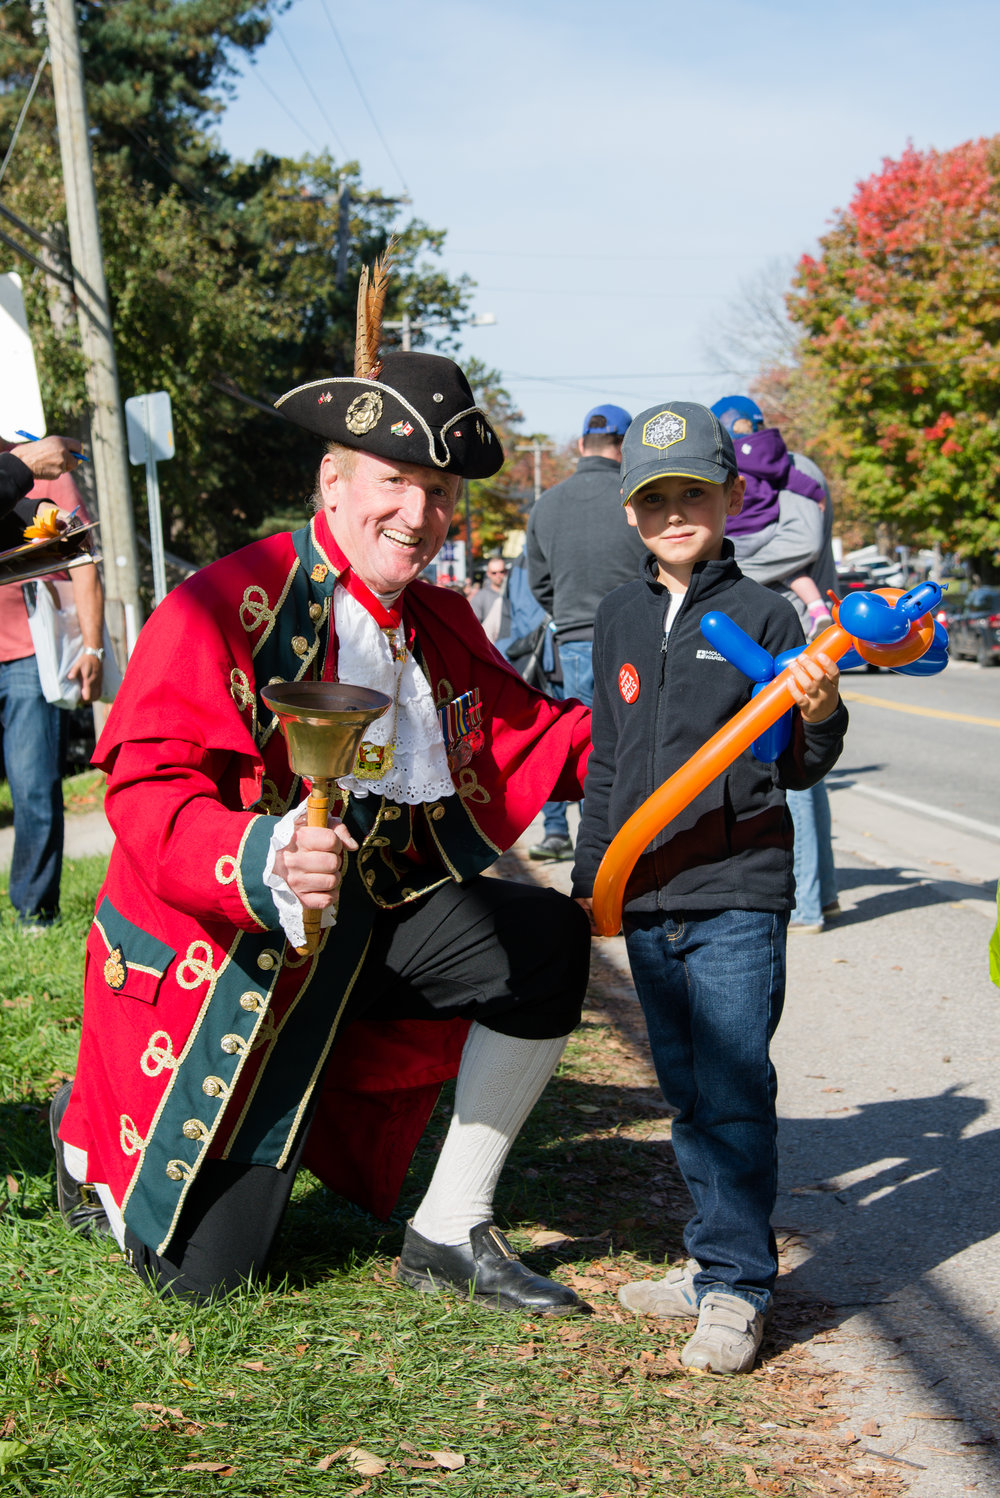 VOLUNTEER NOW! It literally takes a village to make the Bala Cranberry Festival happen.   - SINCE 1984, A DEDICATED GROUP OF VOLUNTEERS HAS ENSURED THE BALA CRANBERRY FESTIVAL IS AN EVENT THAT CAN'T BE MISSED. LET'S KEEP THE TRADITION GOING!